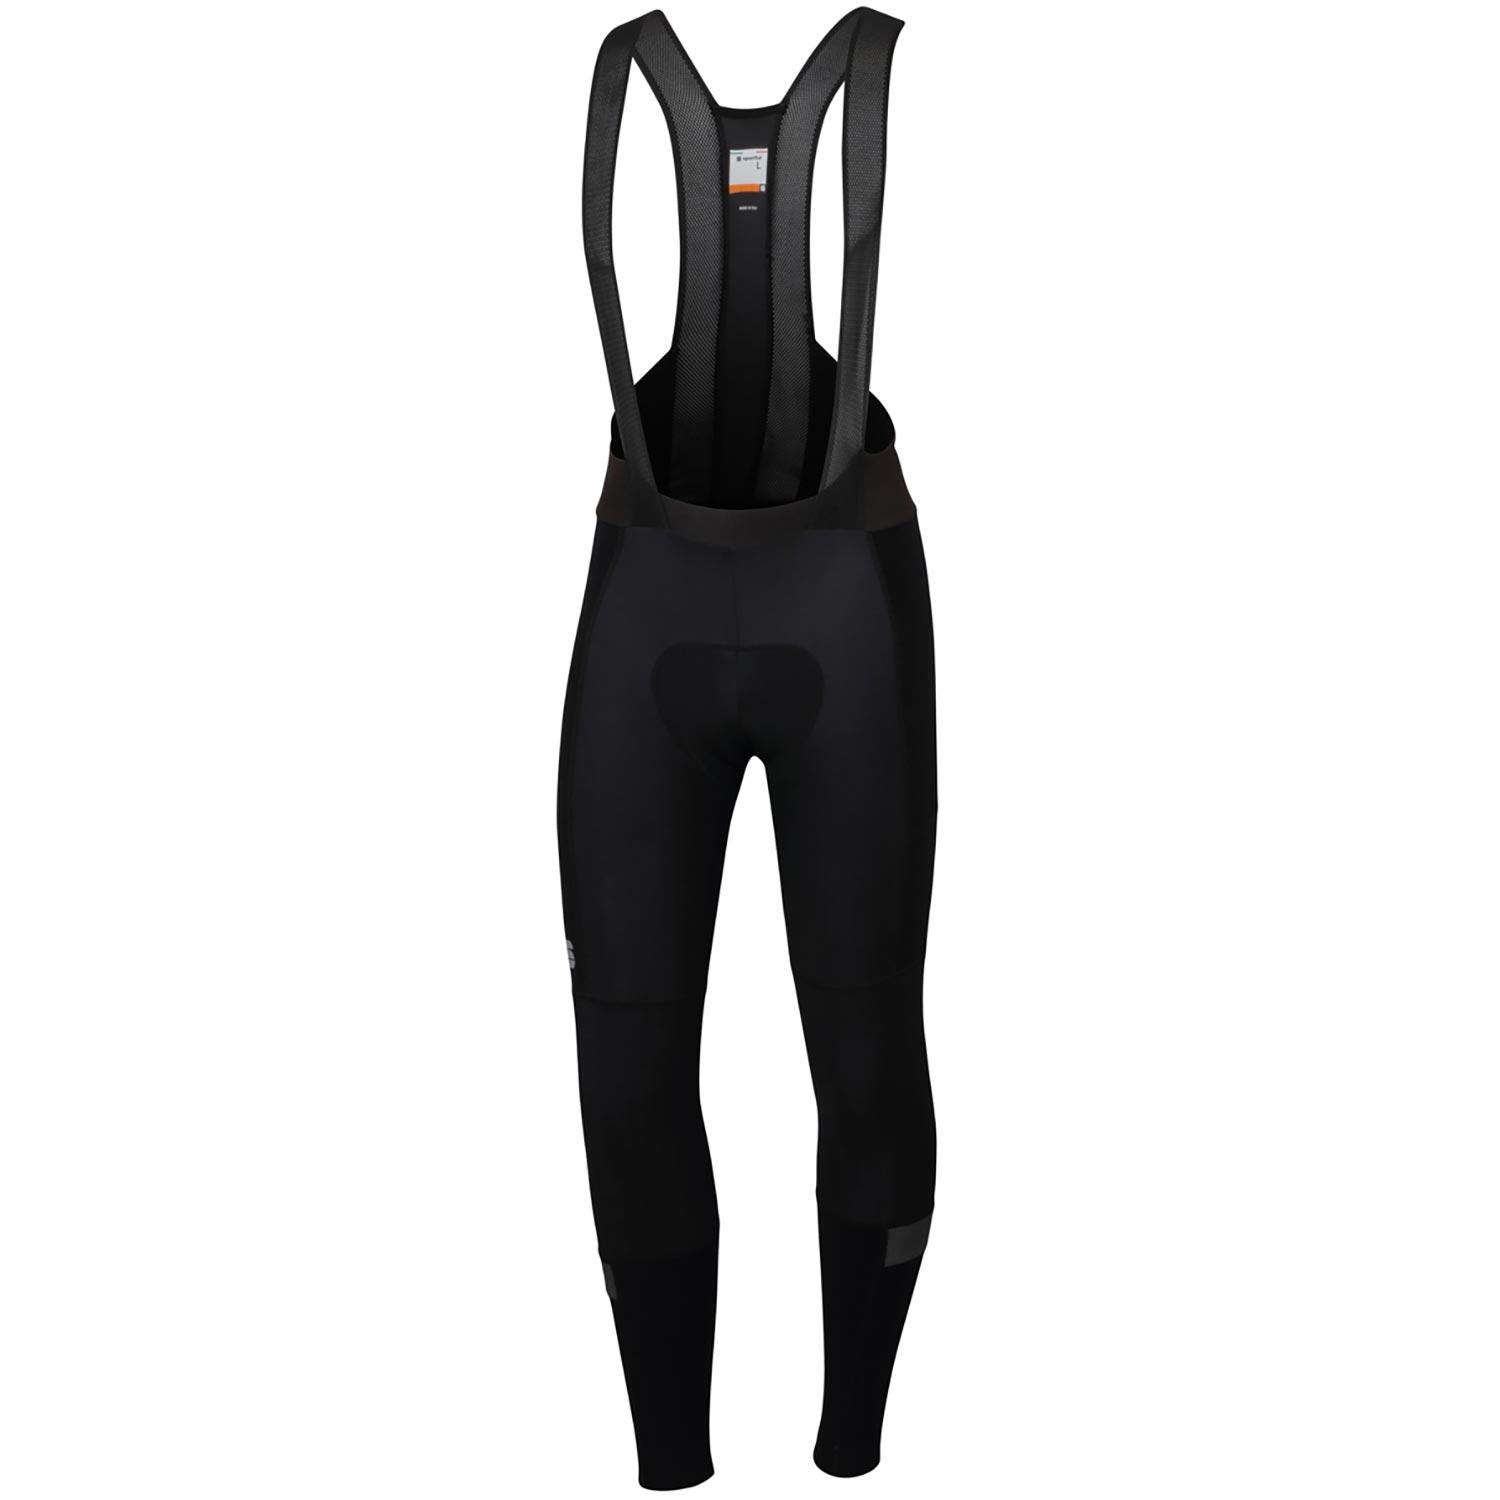 Sportful-Sportful Supergiara Bibtights-Black-S-SF195100022-saddleback-elite-performance-cycling